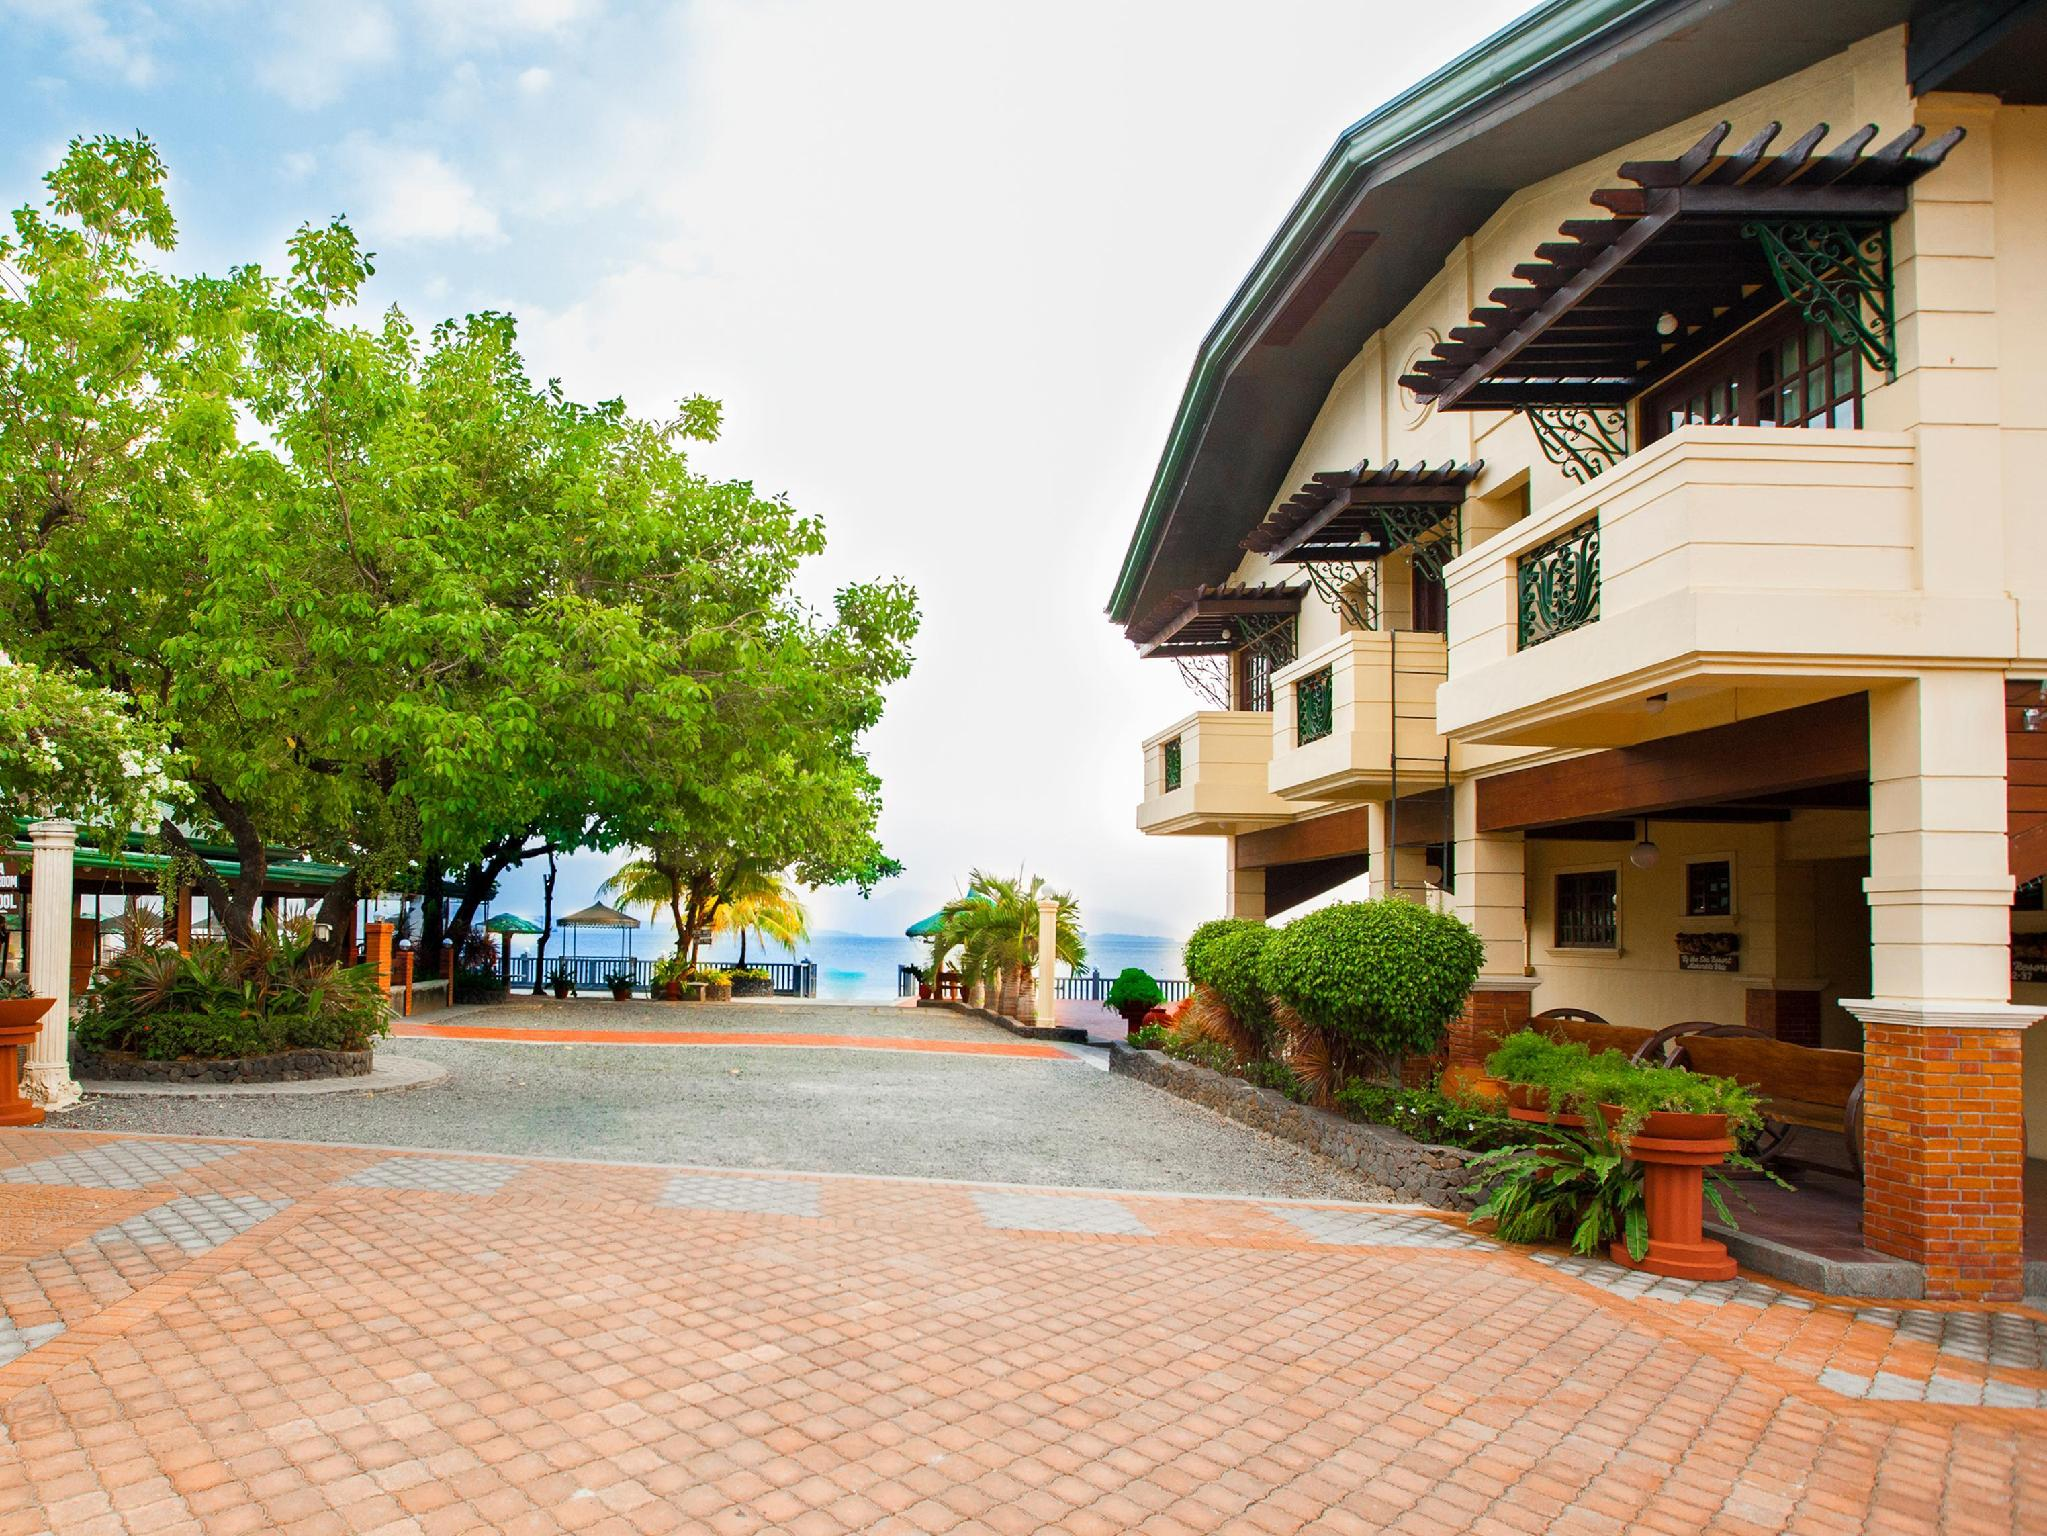 By The Sea Resort Hotel Subic Bay Subic Zambales Philippines Great Discounted Rates